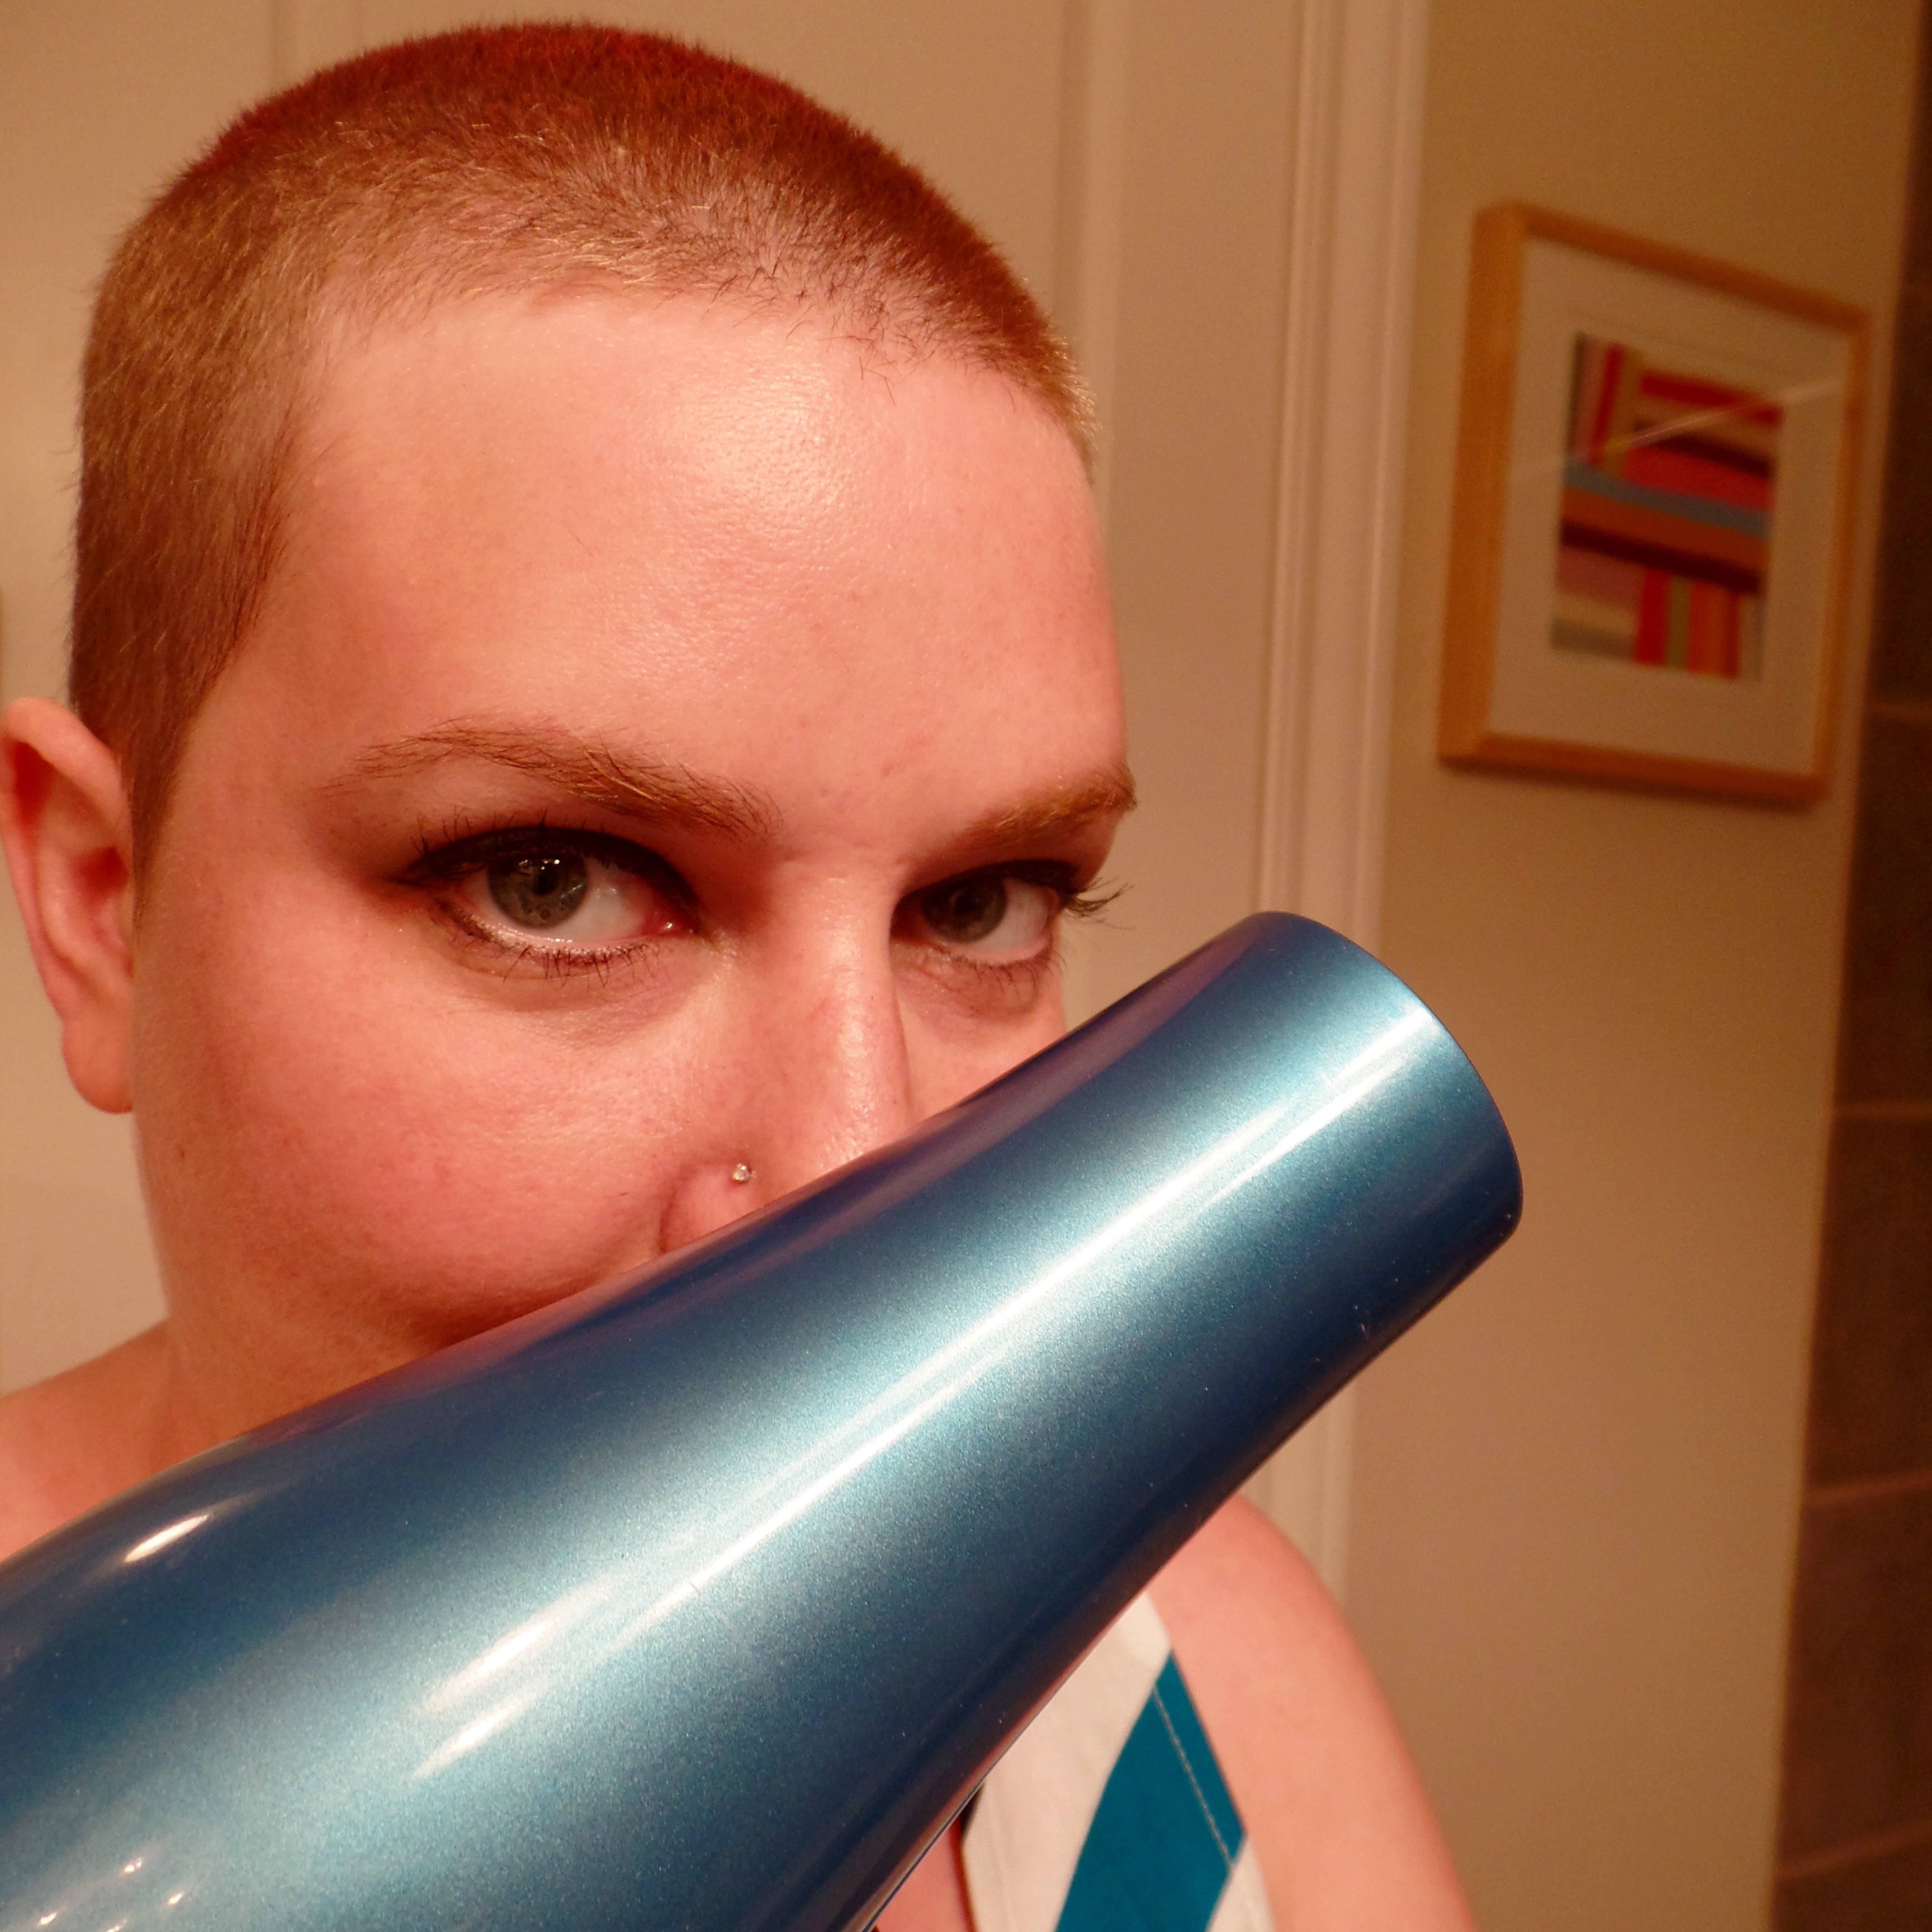 Shaved head hope holz the hair dryer goes on long term disability buycottarizona Image collections